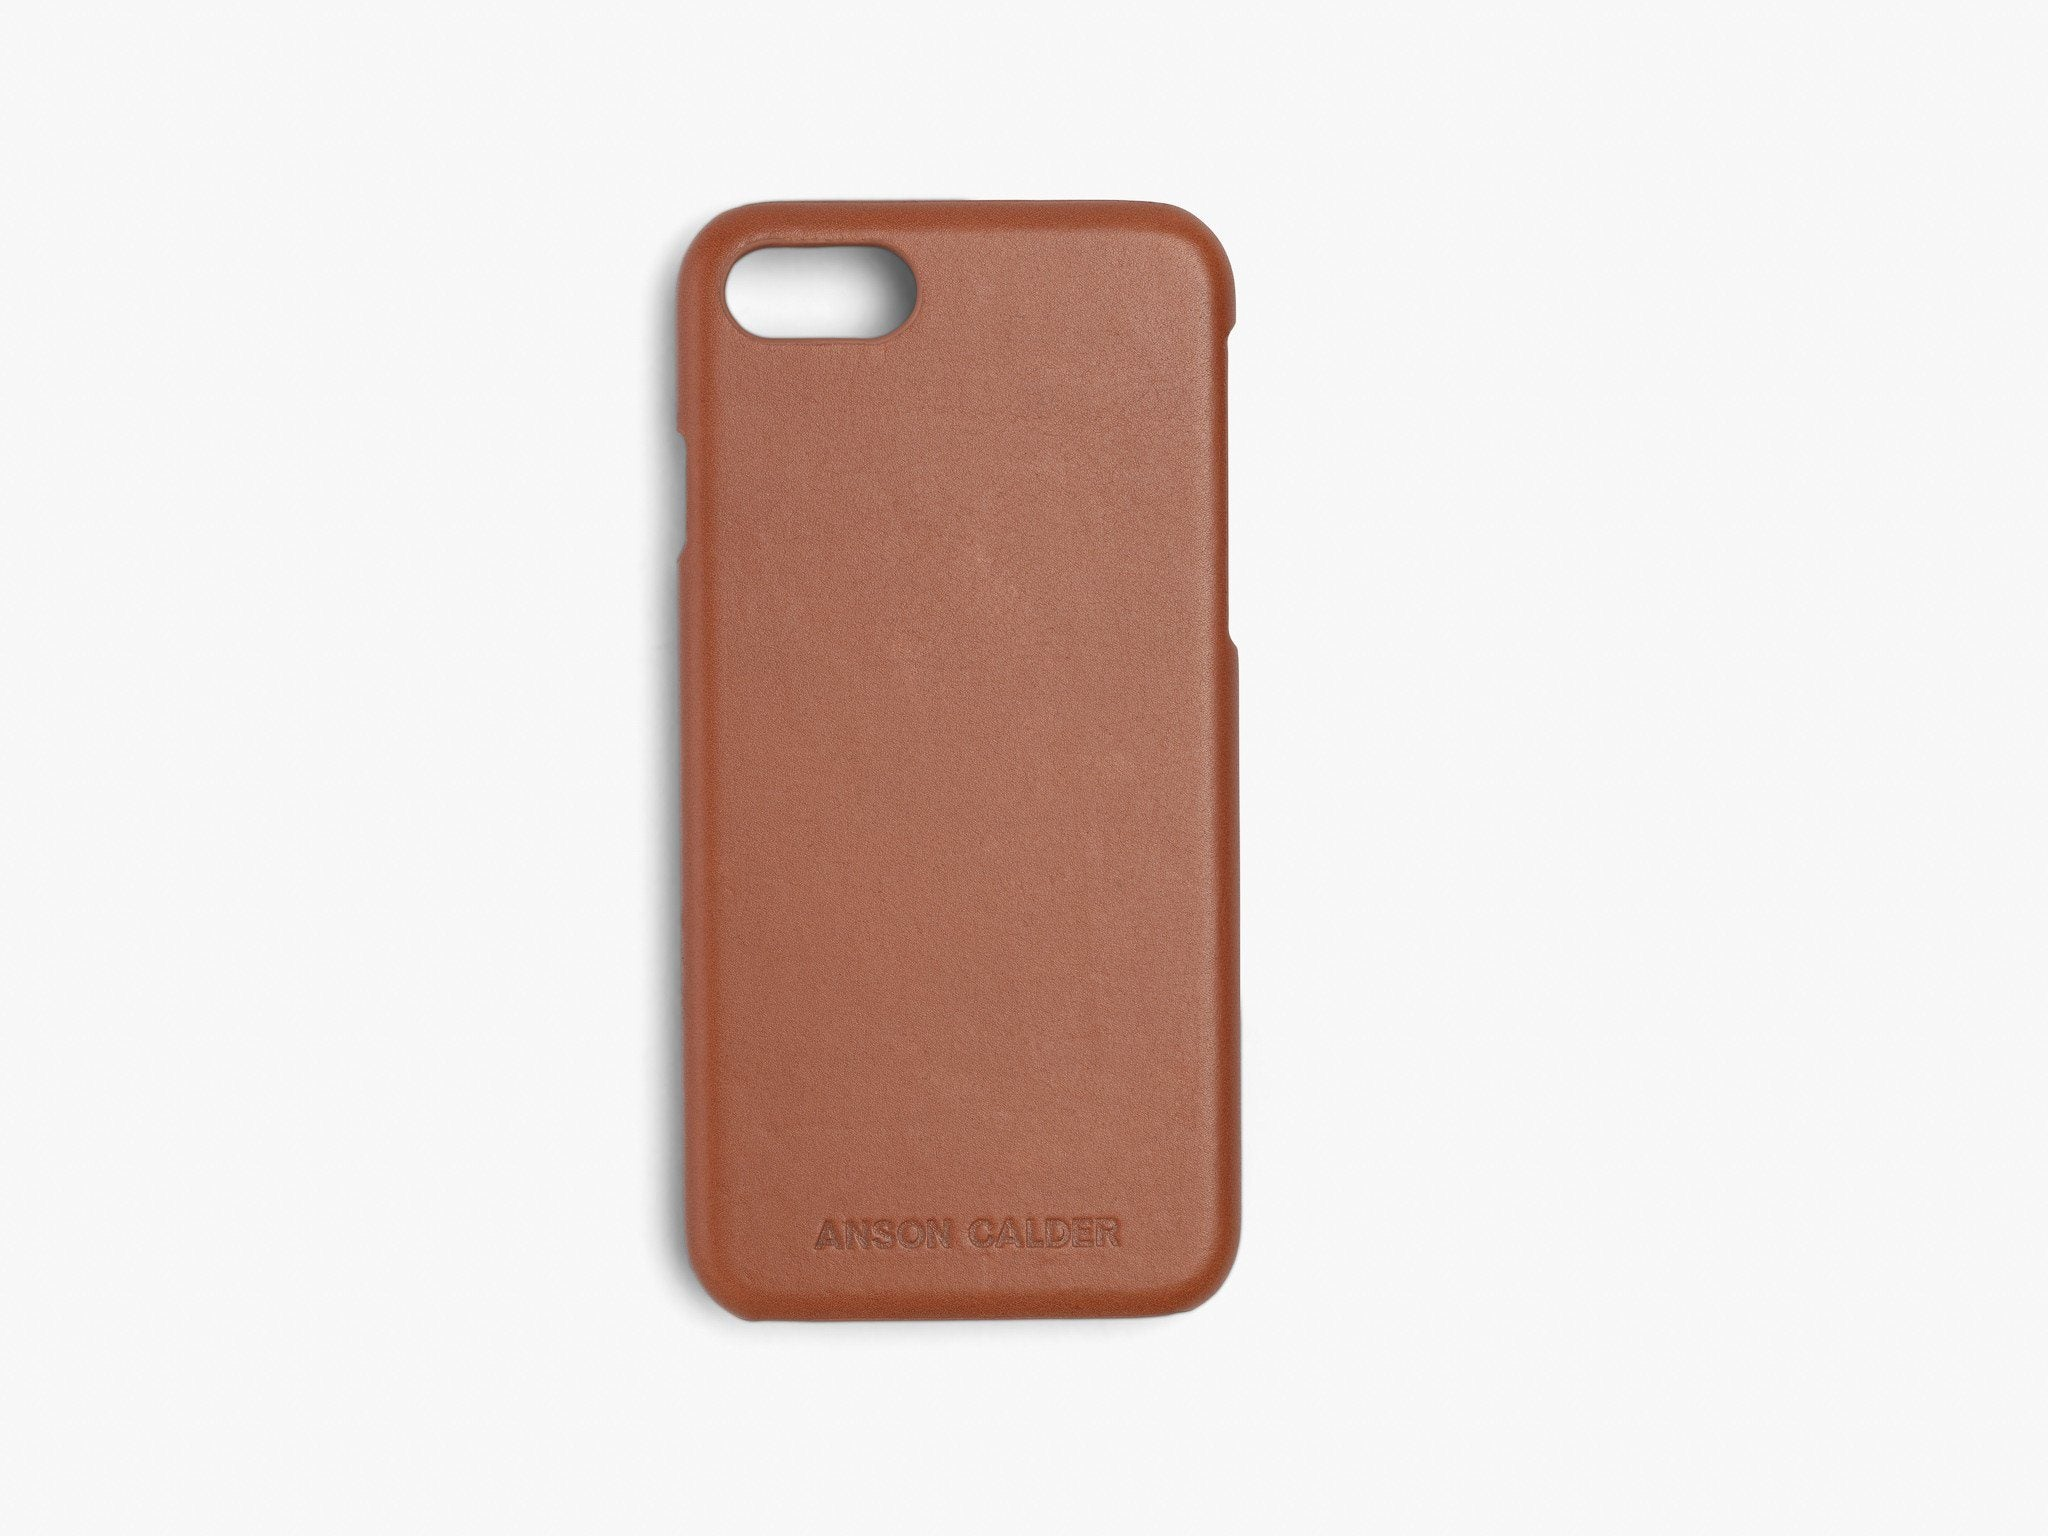 CALFSKIN iPHONE CASE CASES ANSON CALDER iPhone 6 / 6S !iphone8,phone7 _Cognac